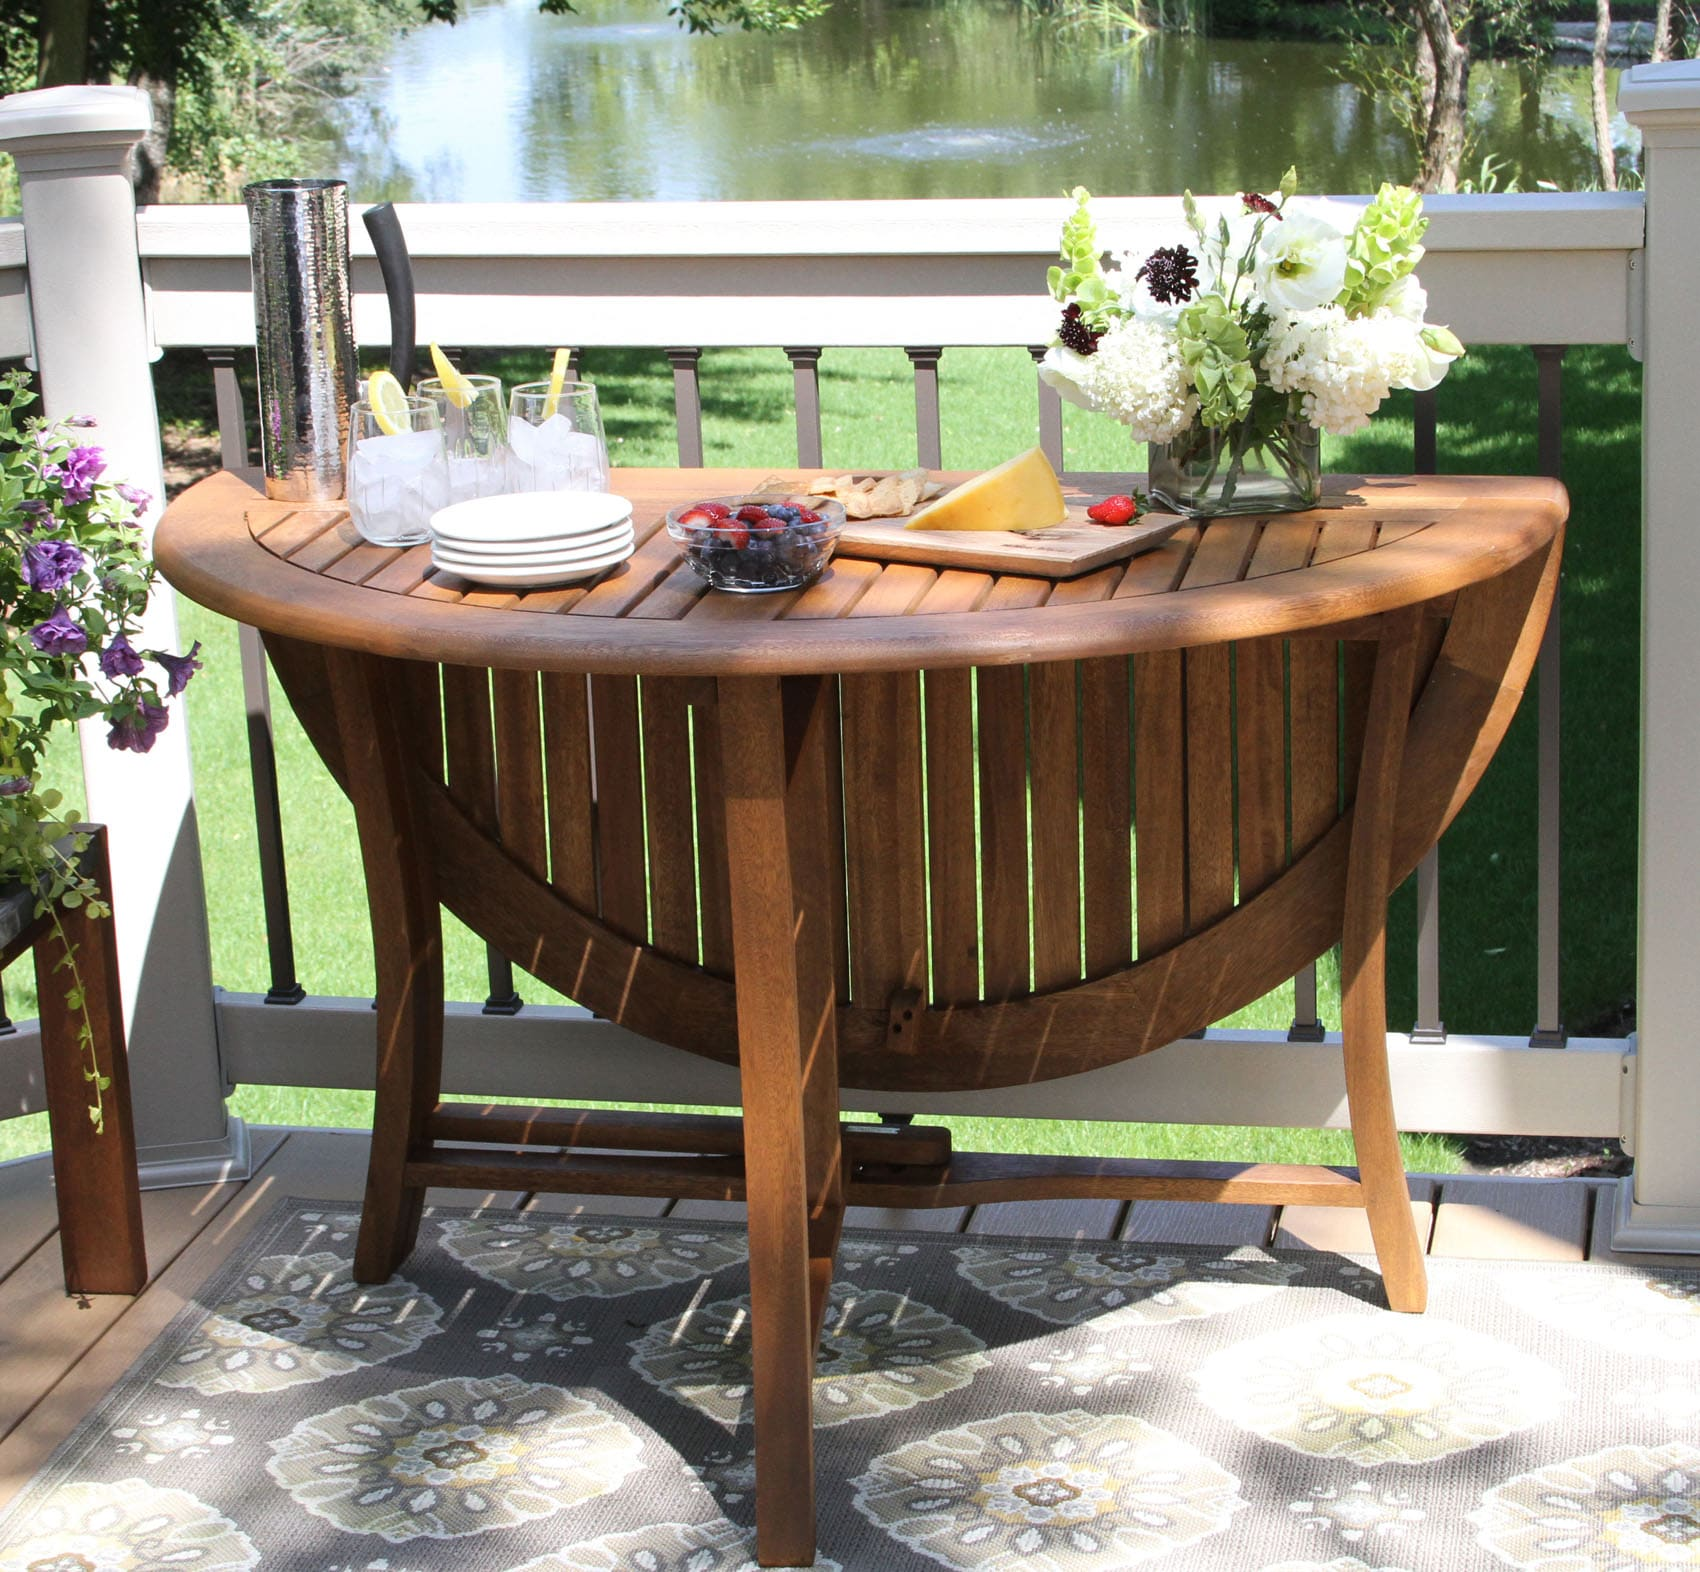 43 Quot Round Eucalyptus Hardwood Folding Table With Umbrella Hole - Garden Furniture Clearance Parasols